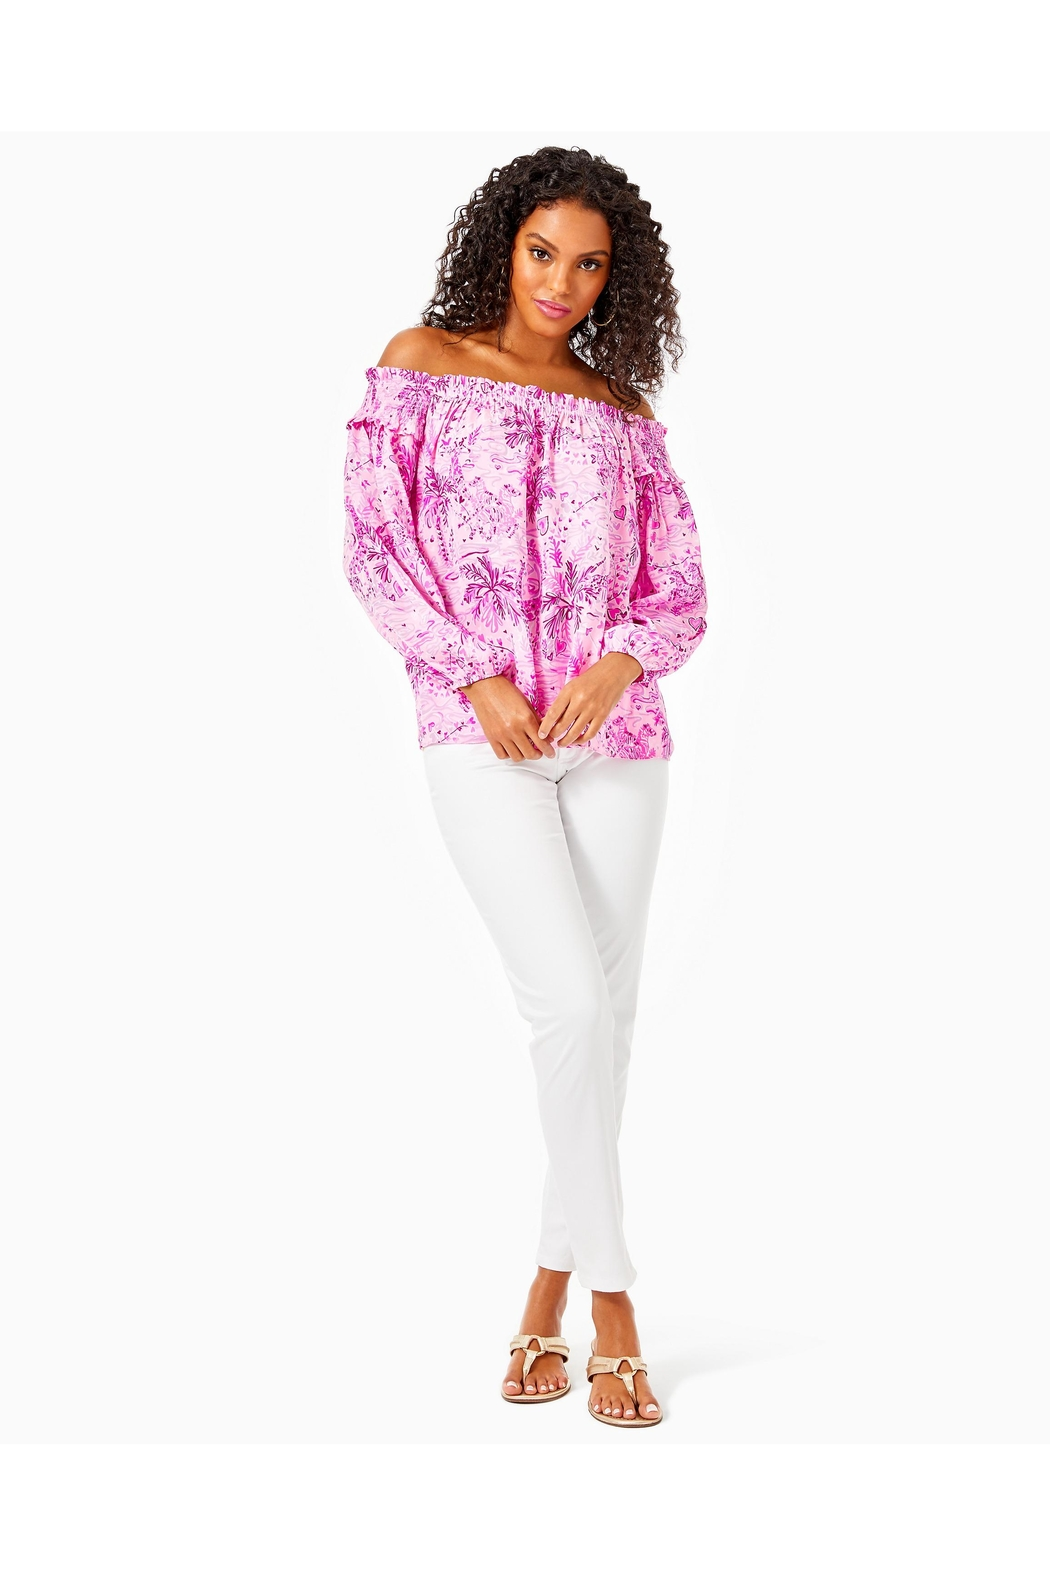 Lilly Pulitzer Blanche Off-The-Shoulder Top - Side Cropped Image